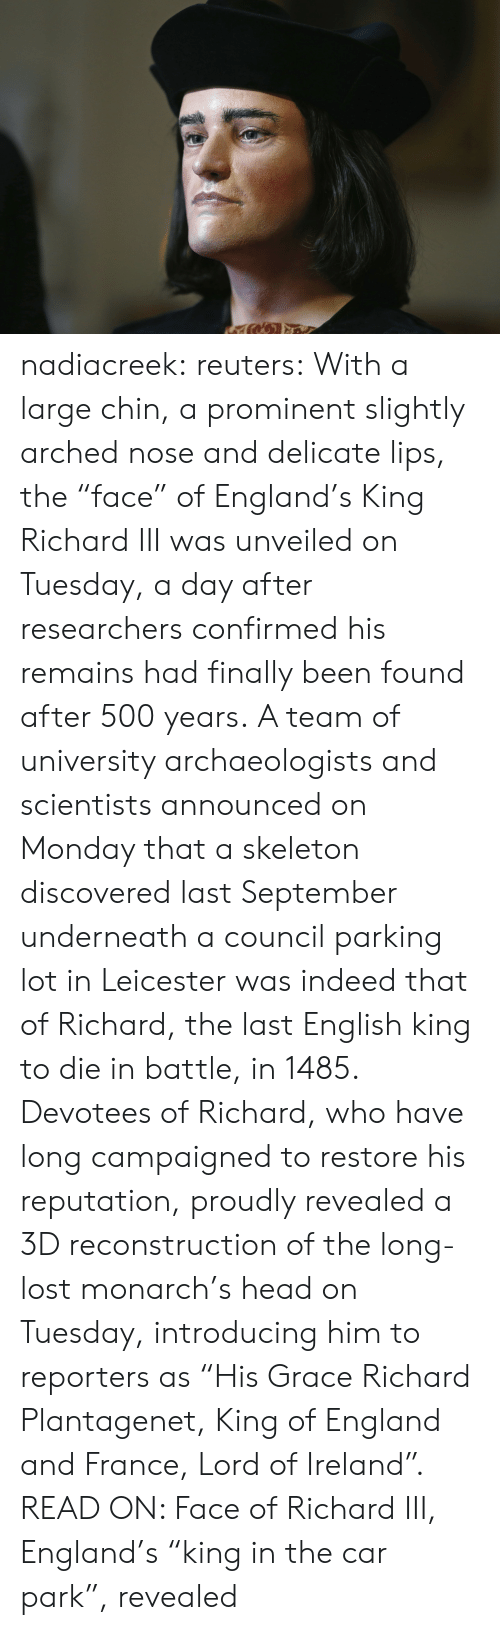 """Remains: nadiacreek: reuters:  With a large chin, a prominent slightly arched nose and delicate lips, the """"face"""" of England's King Richard III was unveiled on Tuesday, a day after researchers confirmed his remains had finally been found after 500 years. A team of university archaeologists and scientists announced on Monday that a skeleton discovered last September underneath a council parking lot in Leicester was indeed that of Richard, the last English king to die in battle, in 1485. Devotees of Richard, who have long campaigned to restore his reputation, proudly revealed a 3D reconstruction of the long-lost monarch's head on Tuesday, introducing him to reporters as """"His Grace Richard Plantagenet, King of England and France, Lord of Ireland"""". READ ON: Face of Richard III, England's """"king in the car park"""", revealed"""